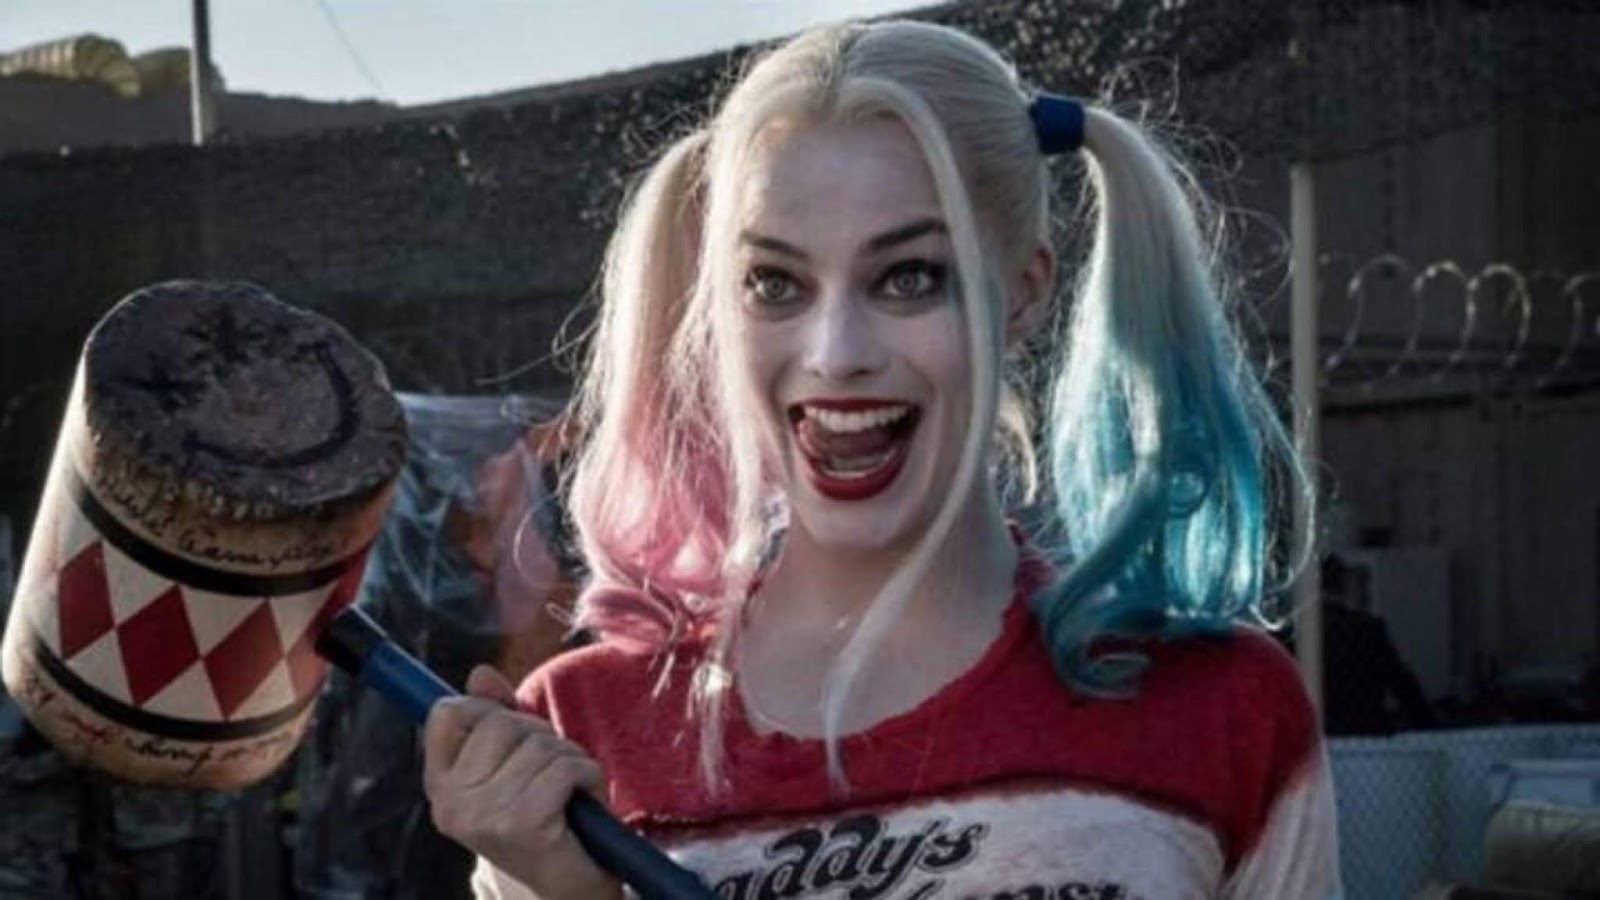 Birds Of Prey 2020 Movie Information Getting You Ready For The Release Date Of Harley Quinn S Spin Off Film Gamer Full Stop Latest Video Game Information News